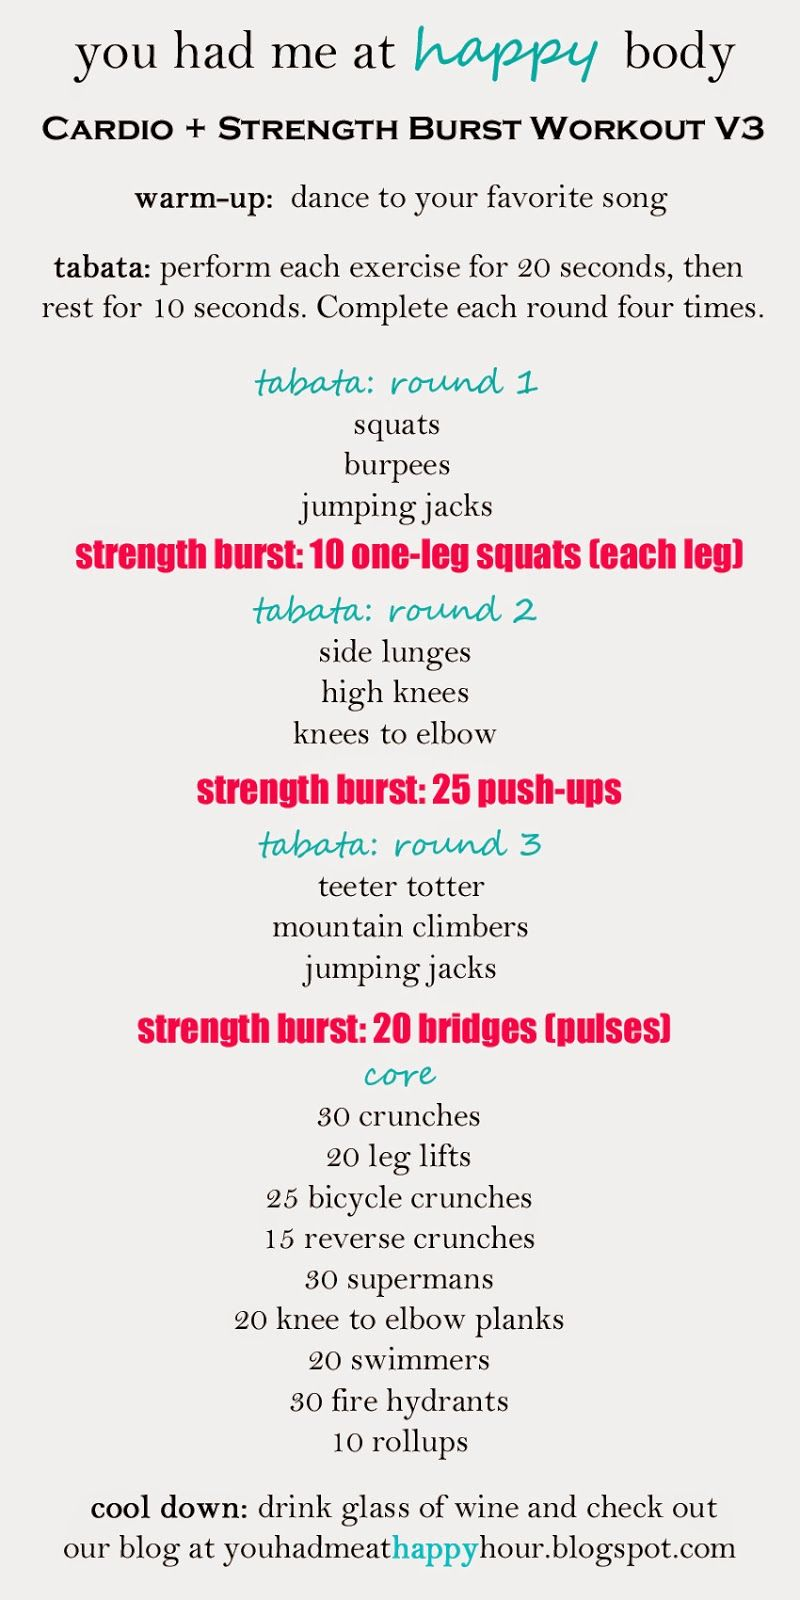 You Had Me at Happy Hour: Cardio + Strength Burst Workout Version 3. Great  tabata full-body workout!